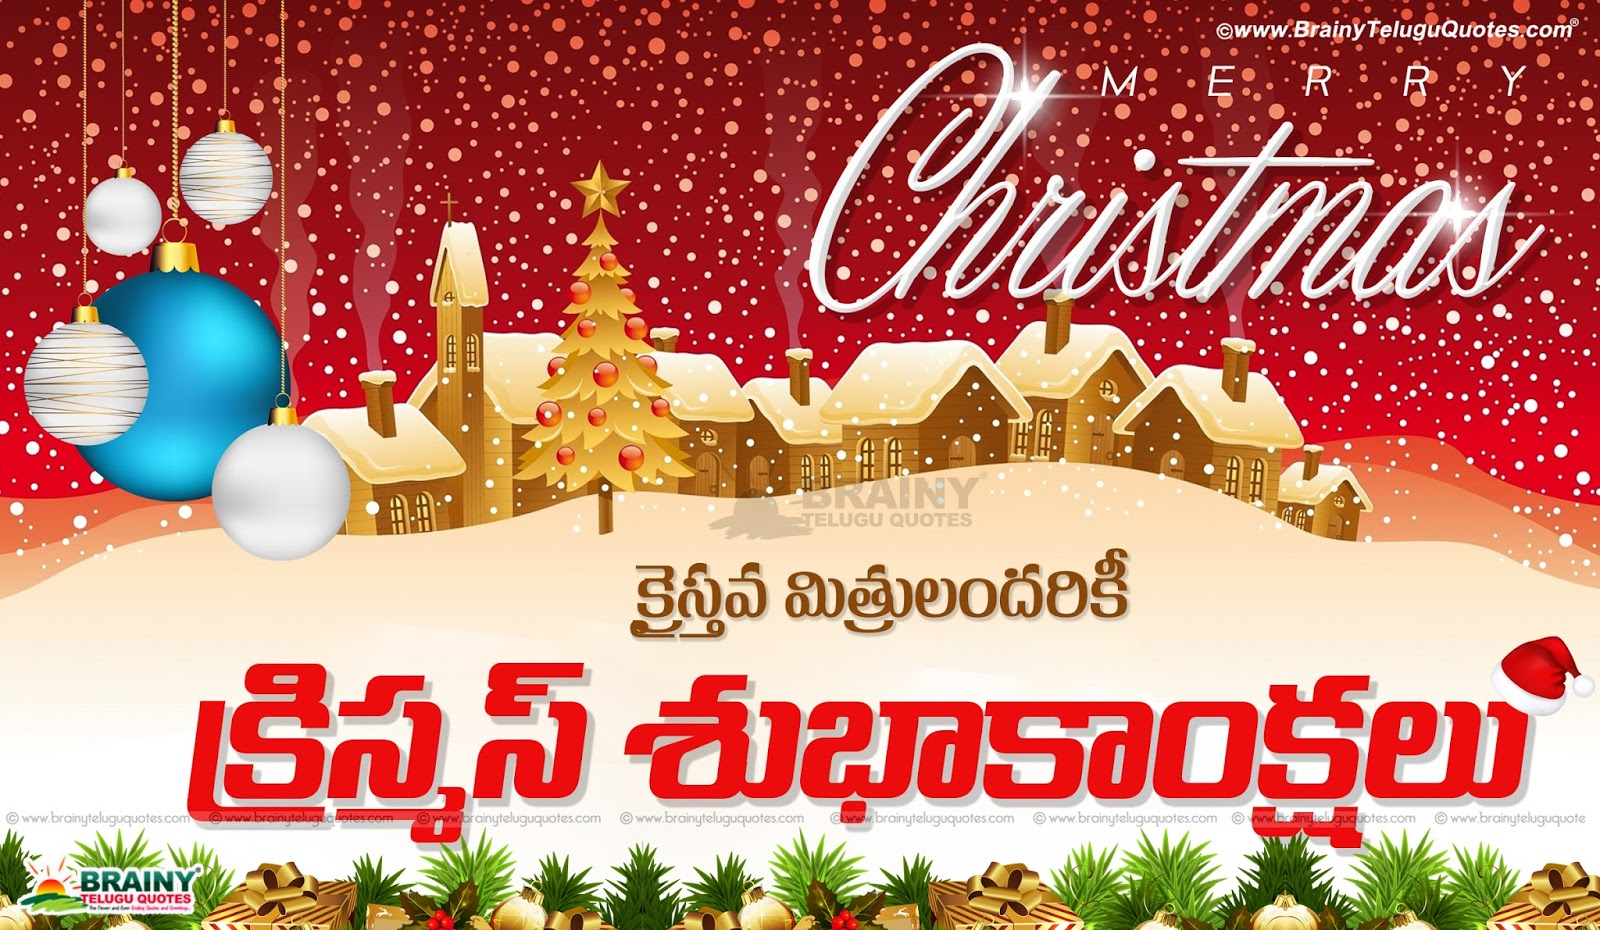 Latest telugu nice christmas quotes messages e cards online for here is 2016 telugu christians christmas greetings x mas greetings in telugu language kristyandbryce Gallery